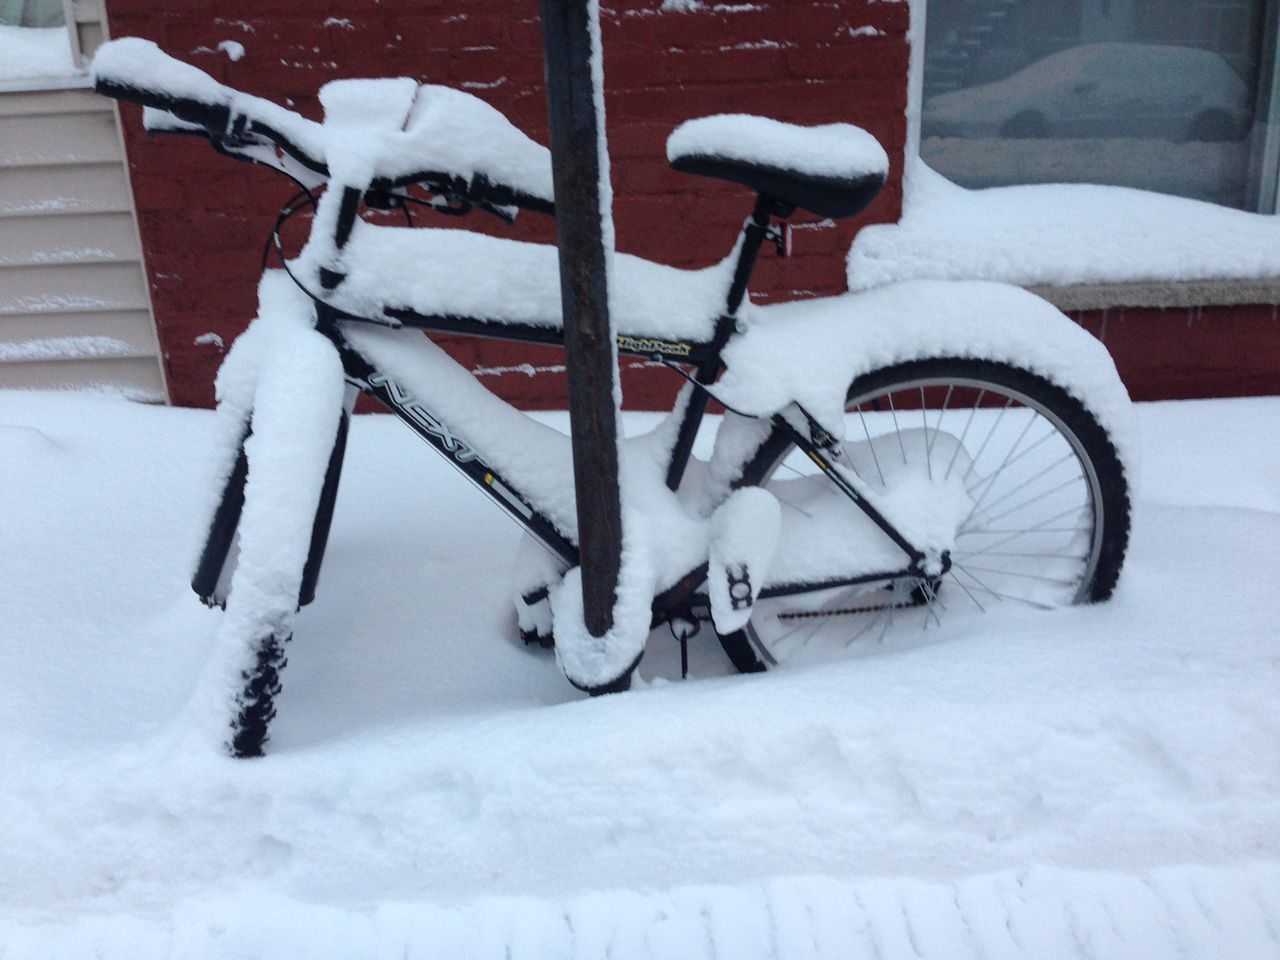 winter, snow, cold temperature, weather, white color, bicycle, transportation, mode of transport, nature, outdoors, day, land vehicle, field, stationary, no people, tobogganing